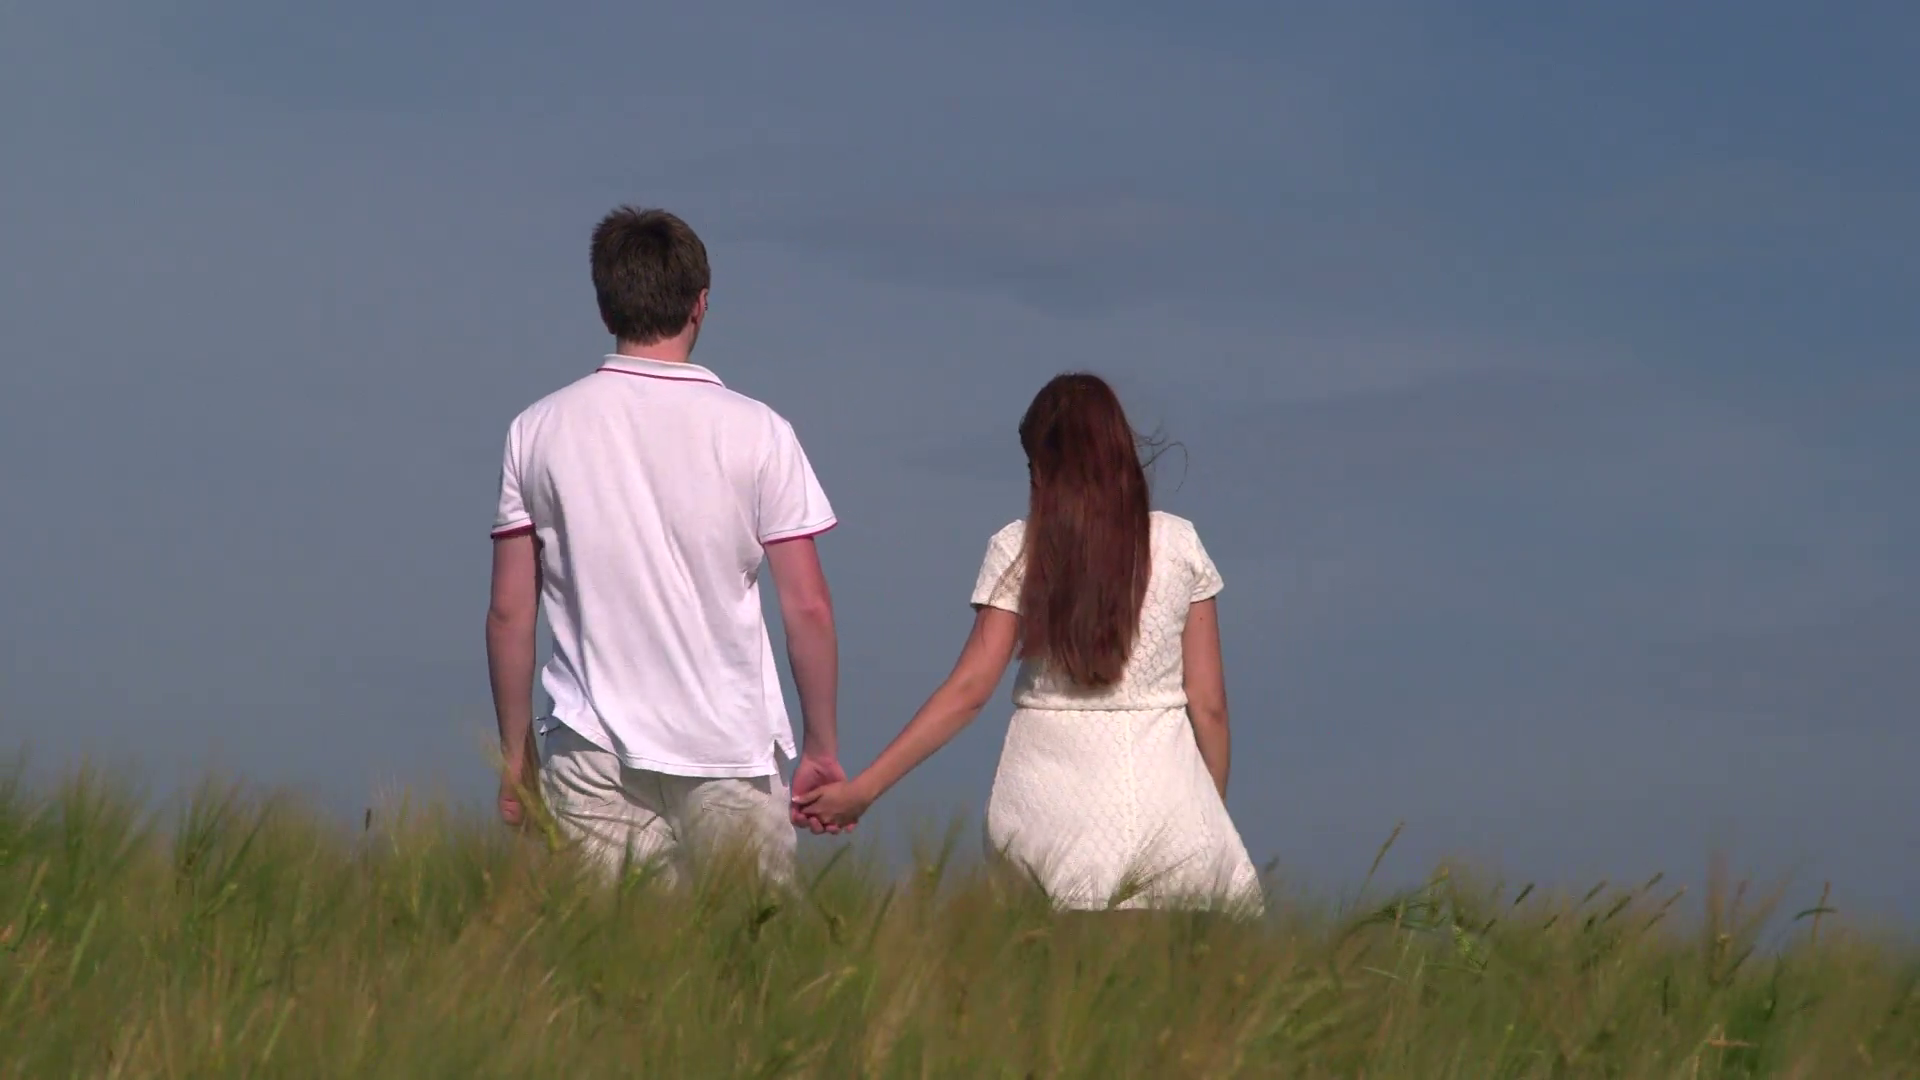 young-couple-holding-hands-and-walking-through-wheat-field_4_gjto9tke__F0000.png